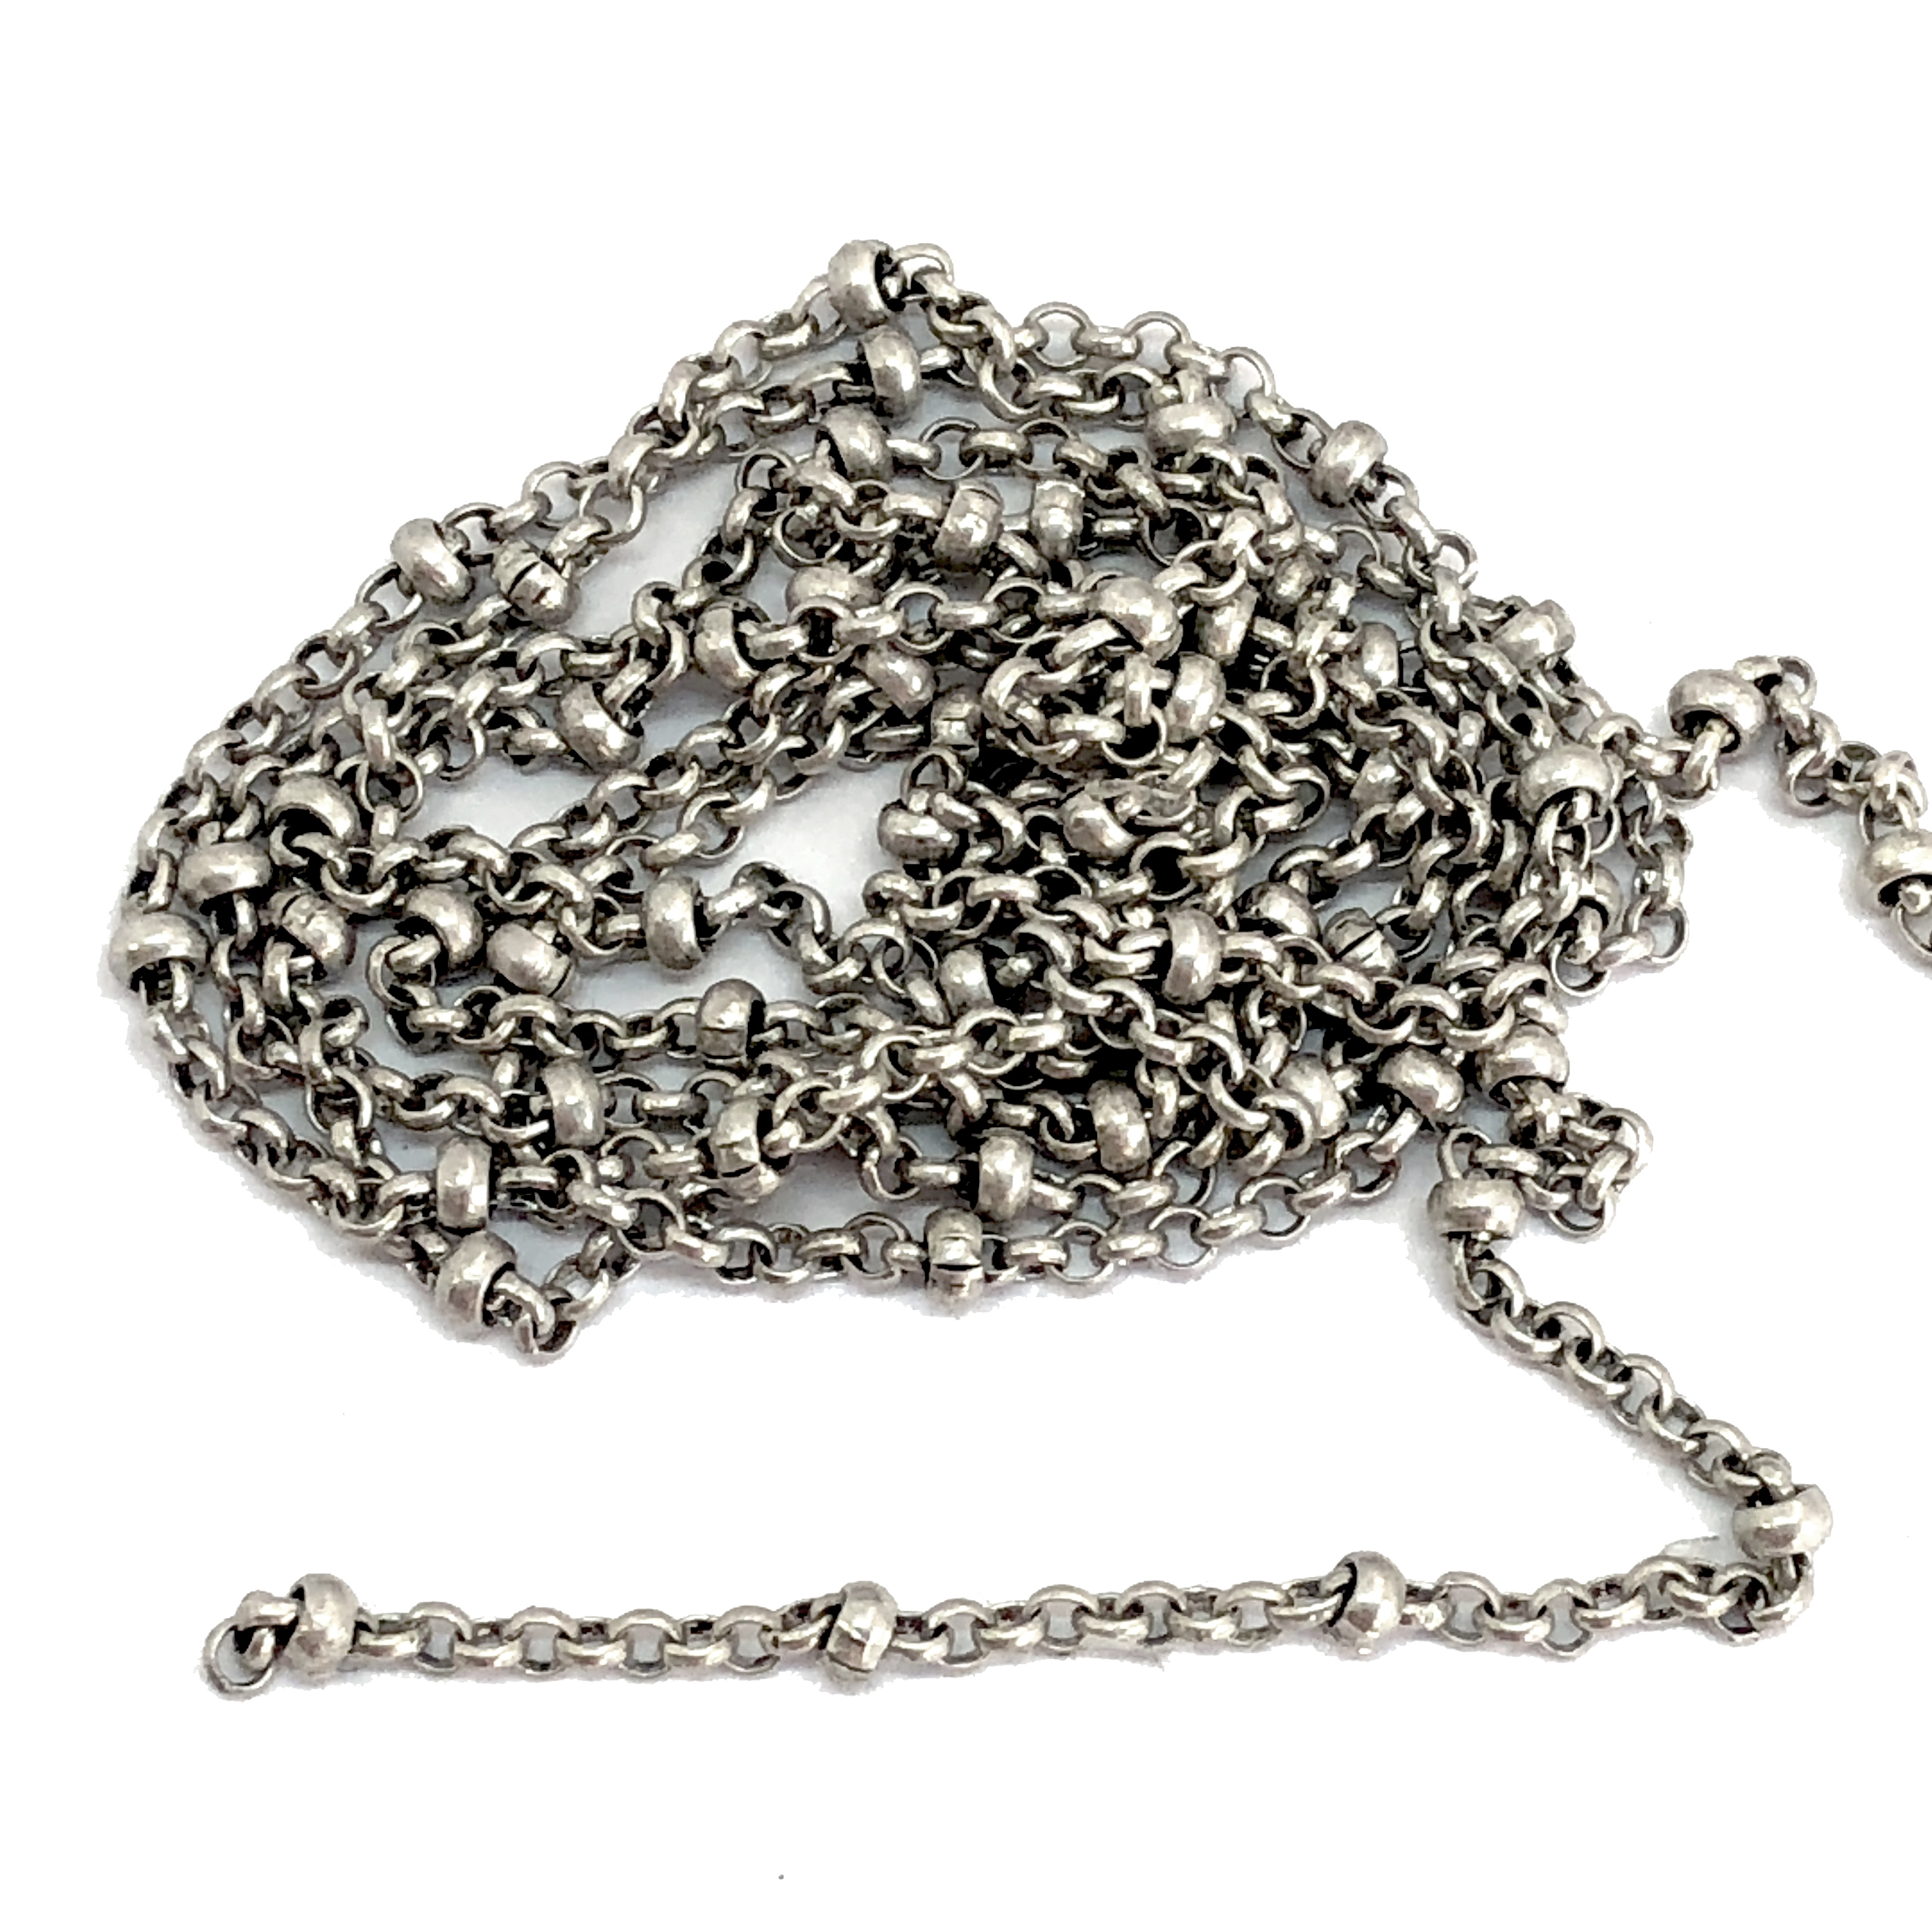 brass chain, antique silver chain, bead and link chain, 07927, B'sue Boutiques, bracelet chain, necklace chain, antique silver chain, nickel free, US made, vintage jewellery supplies, jewelry making,  beading supplies